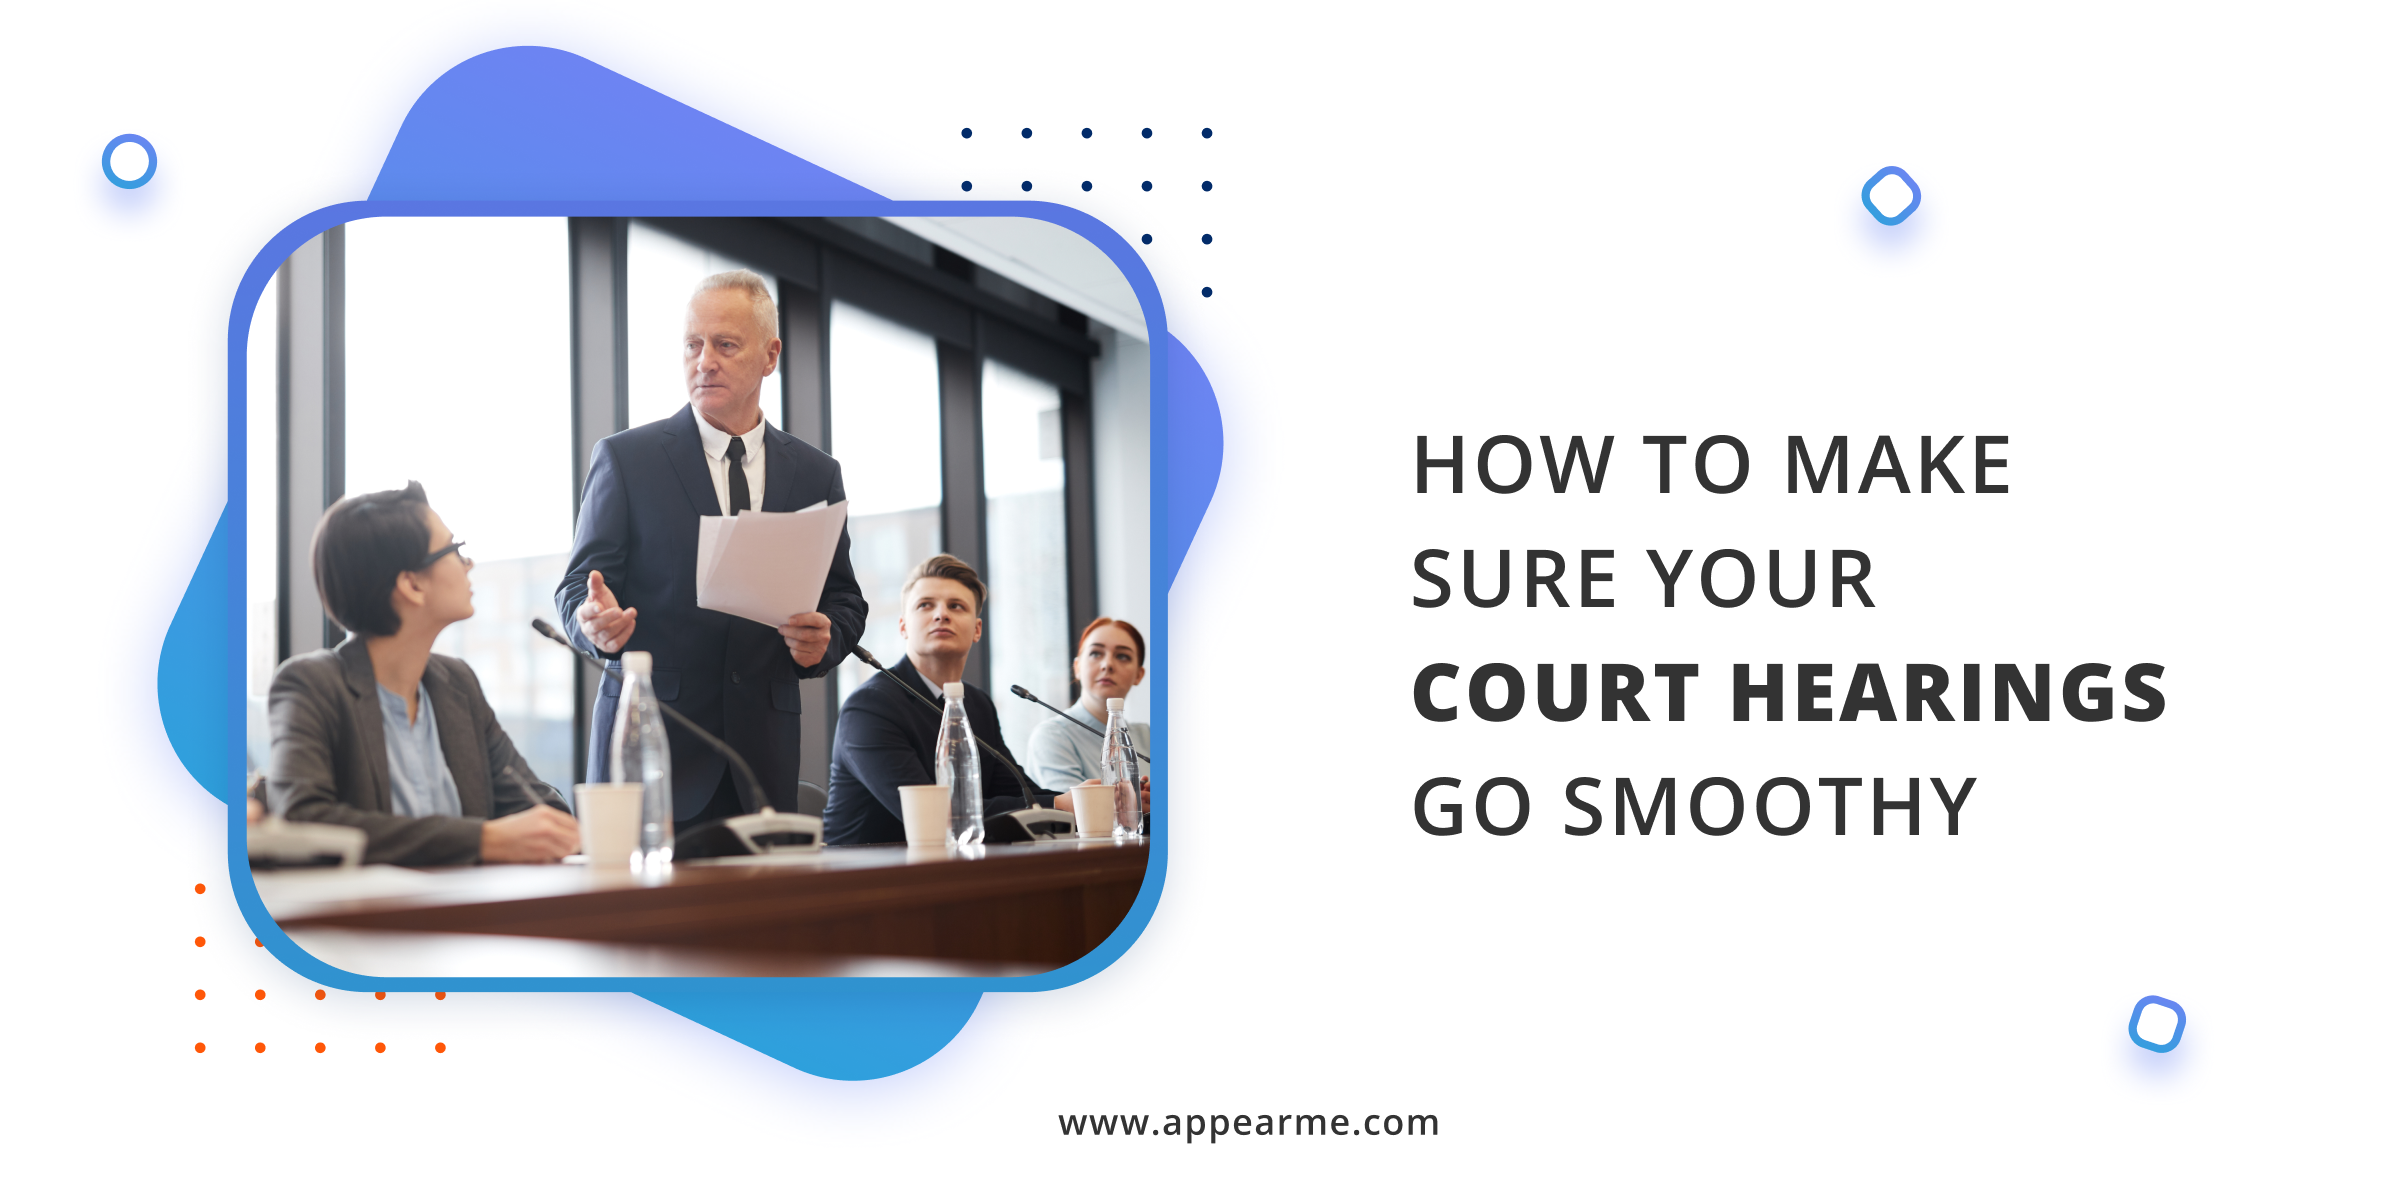 How to Make Sure Your Court Hearings Go Smoothy?